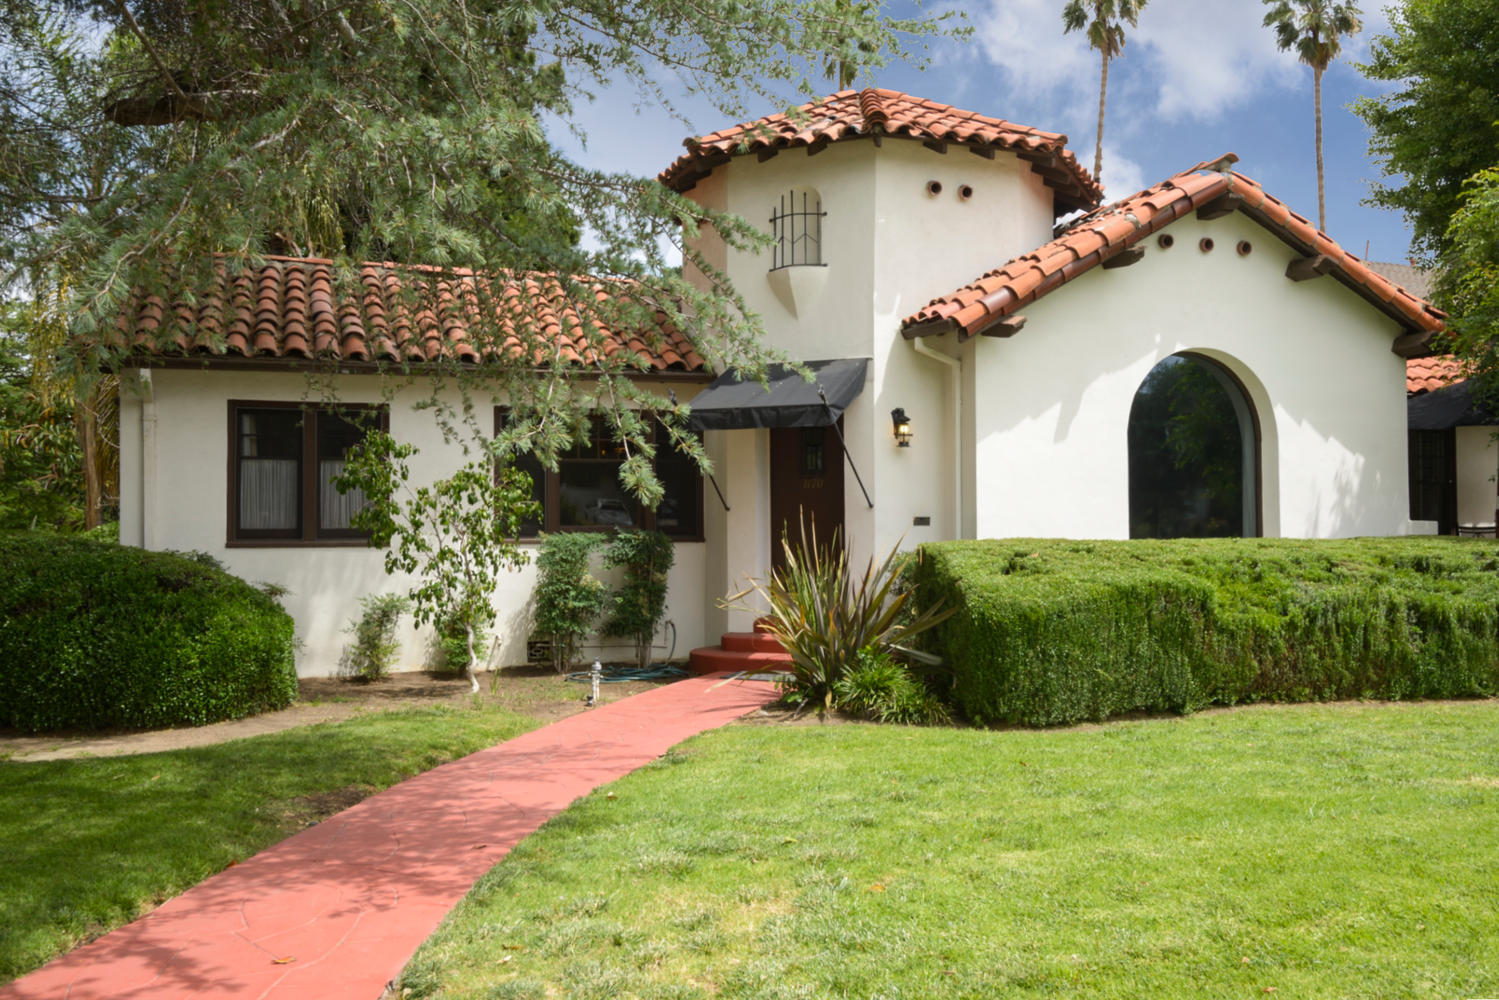 Swell Single Story 4 Bedroom 2 Bath Home For Sale Corona Ca Download Free Architecture Designs Scobabritishbridgeorg